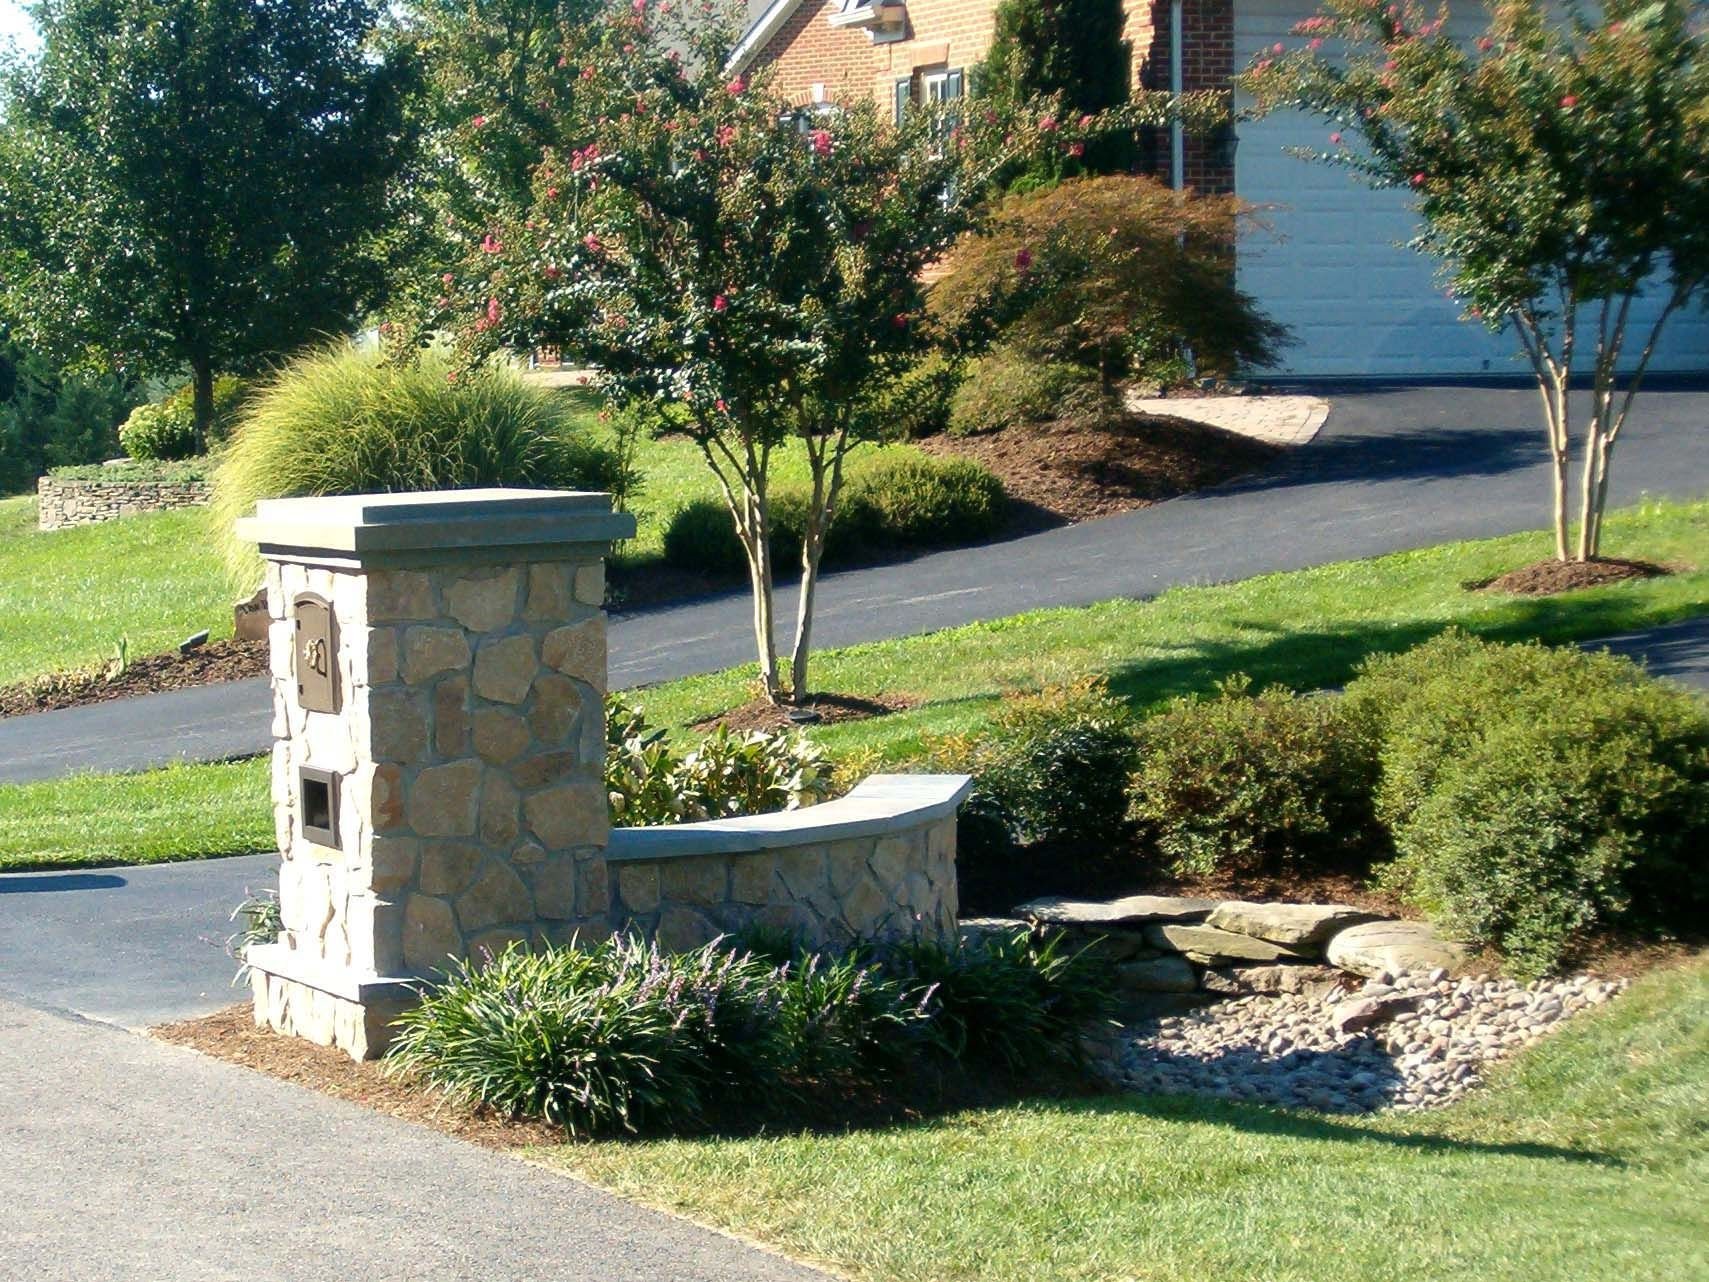 pictures of driveway entrances landscaping stone. Black Bedroom Furniture Sets. Home Design Ideas